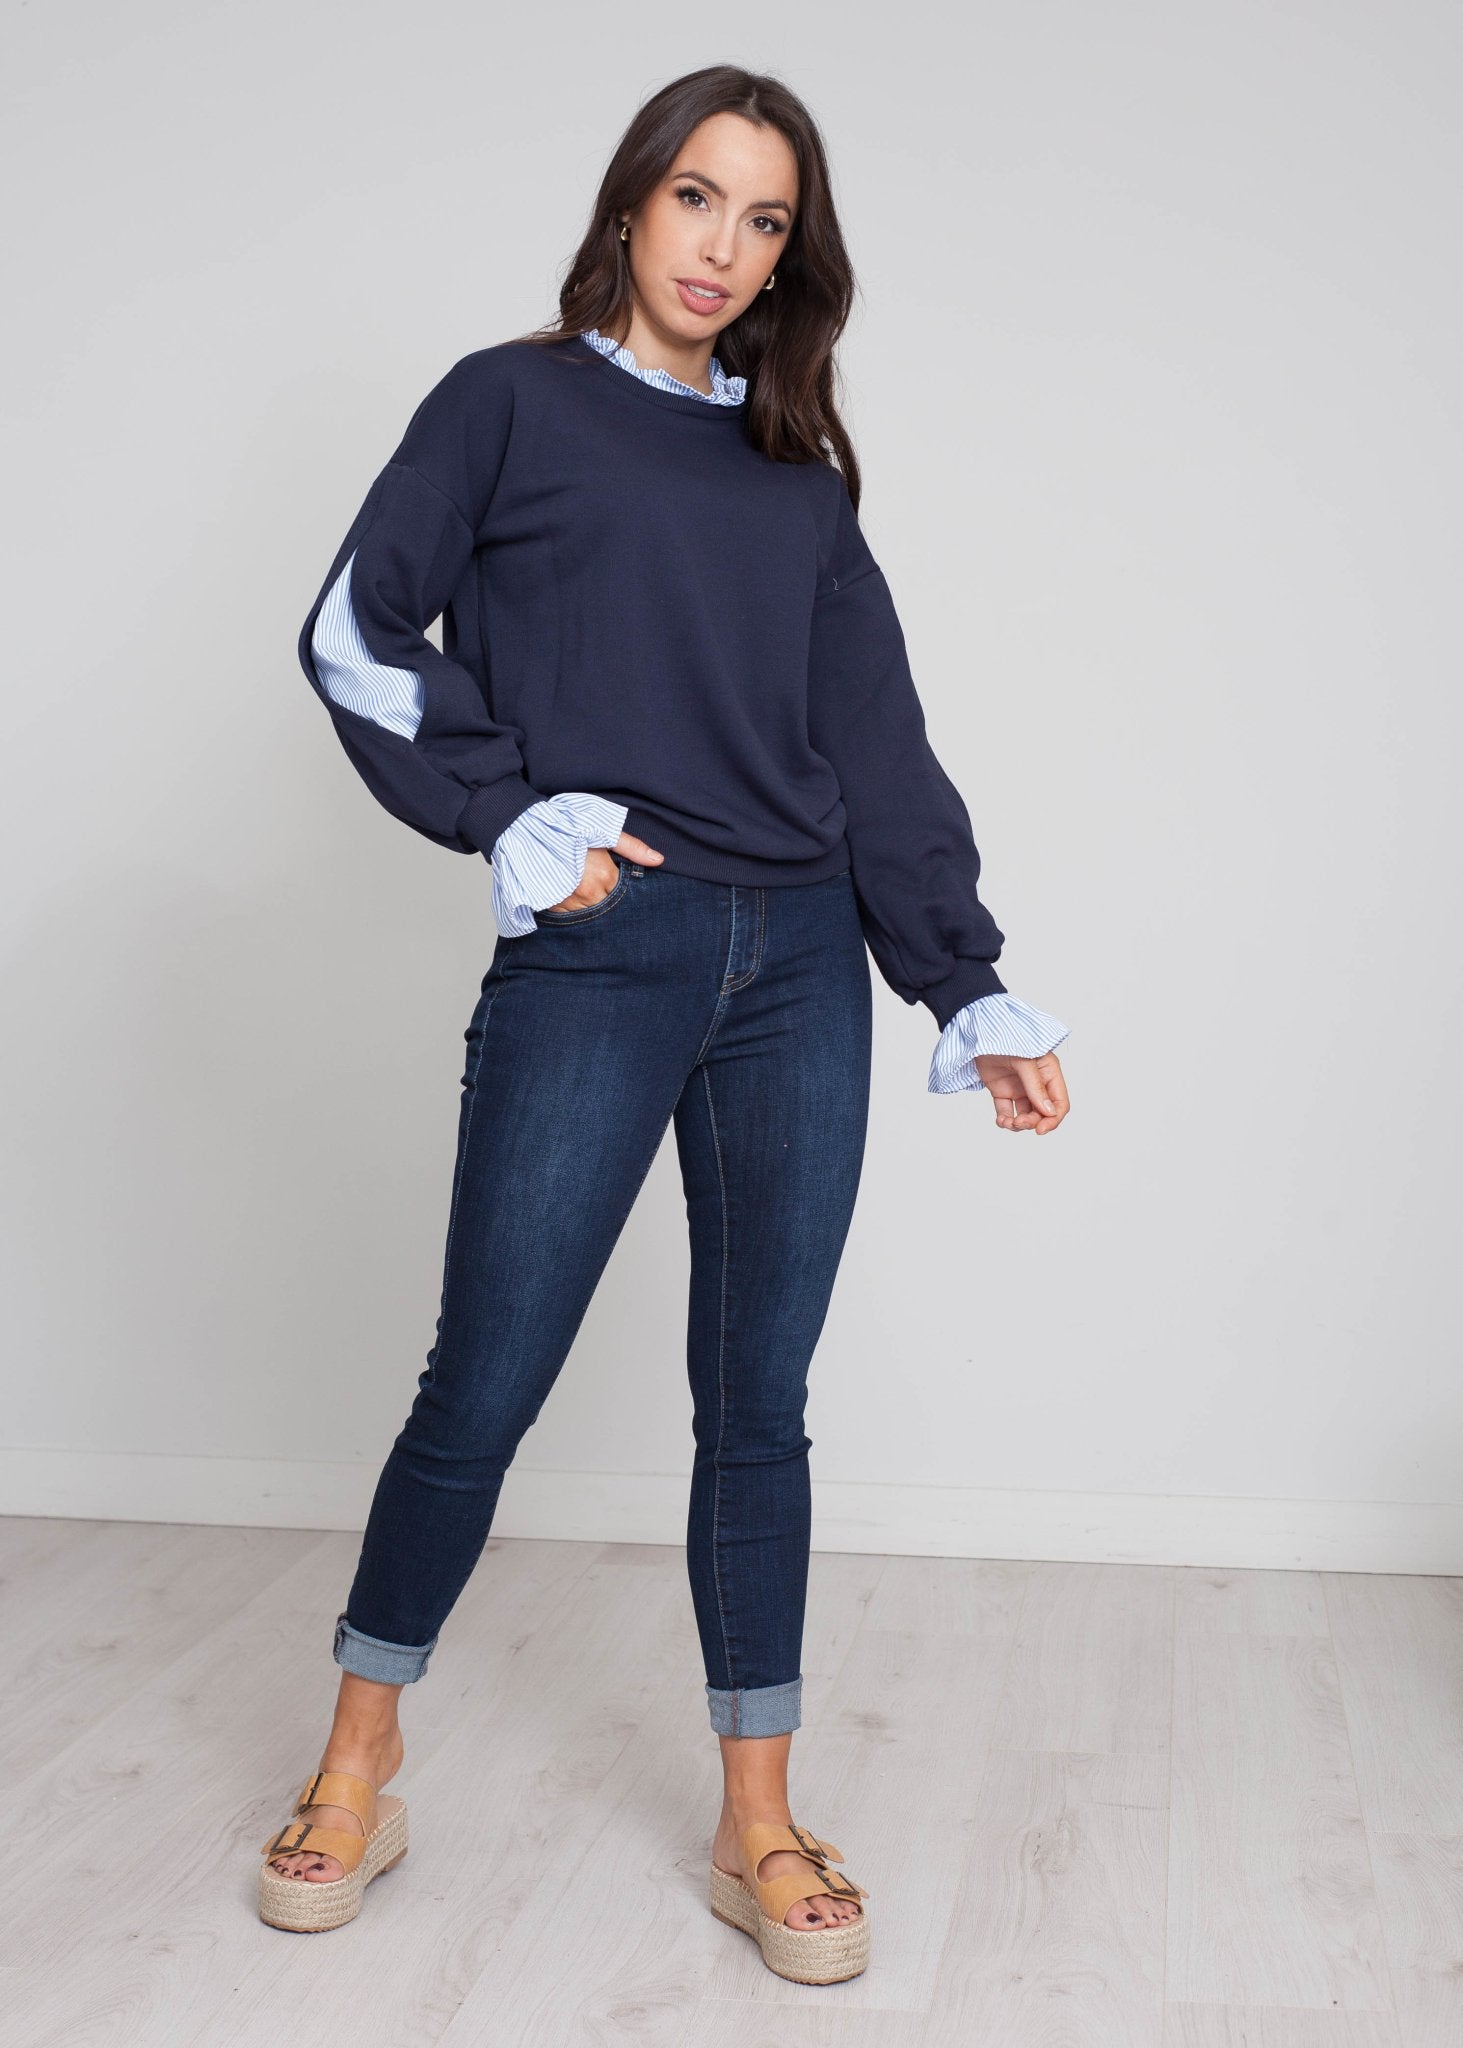 Heidi Pinstripe Sweatshirt In Navy - The Walk in Wardrobe